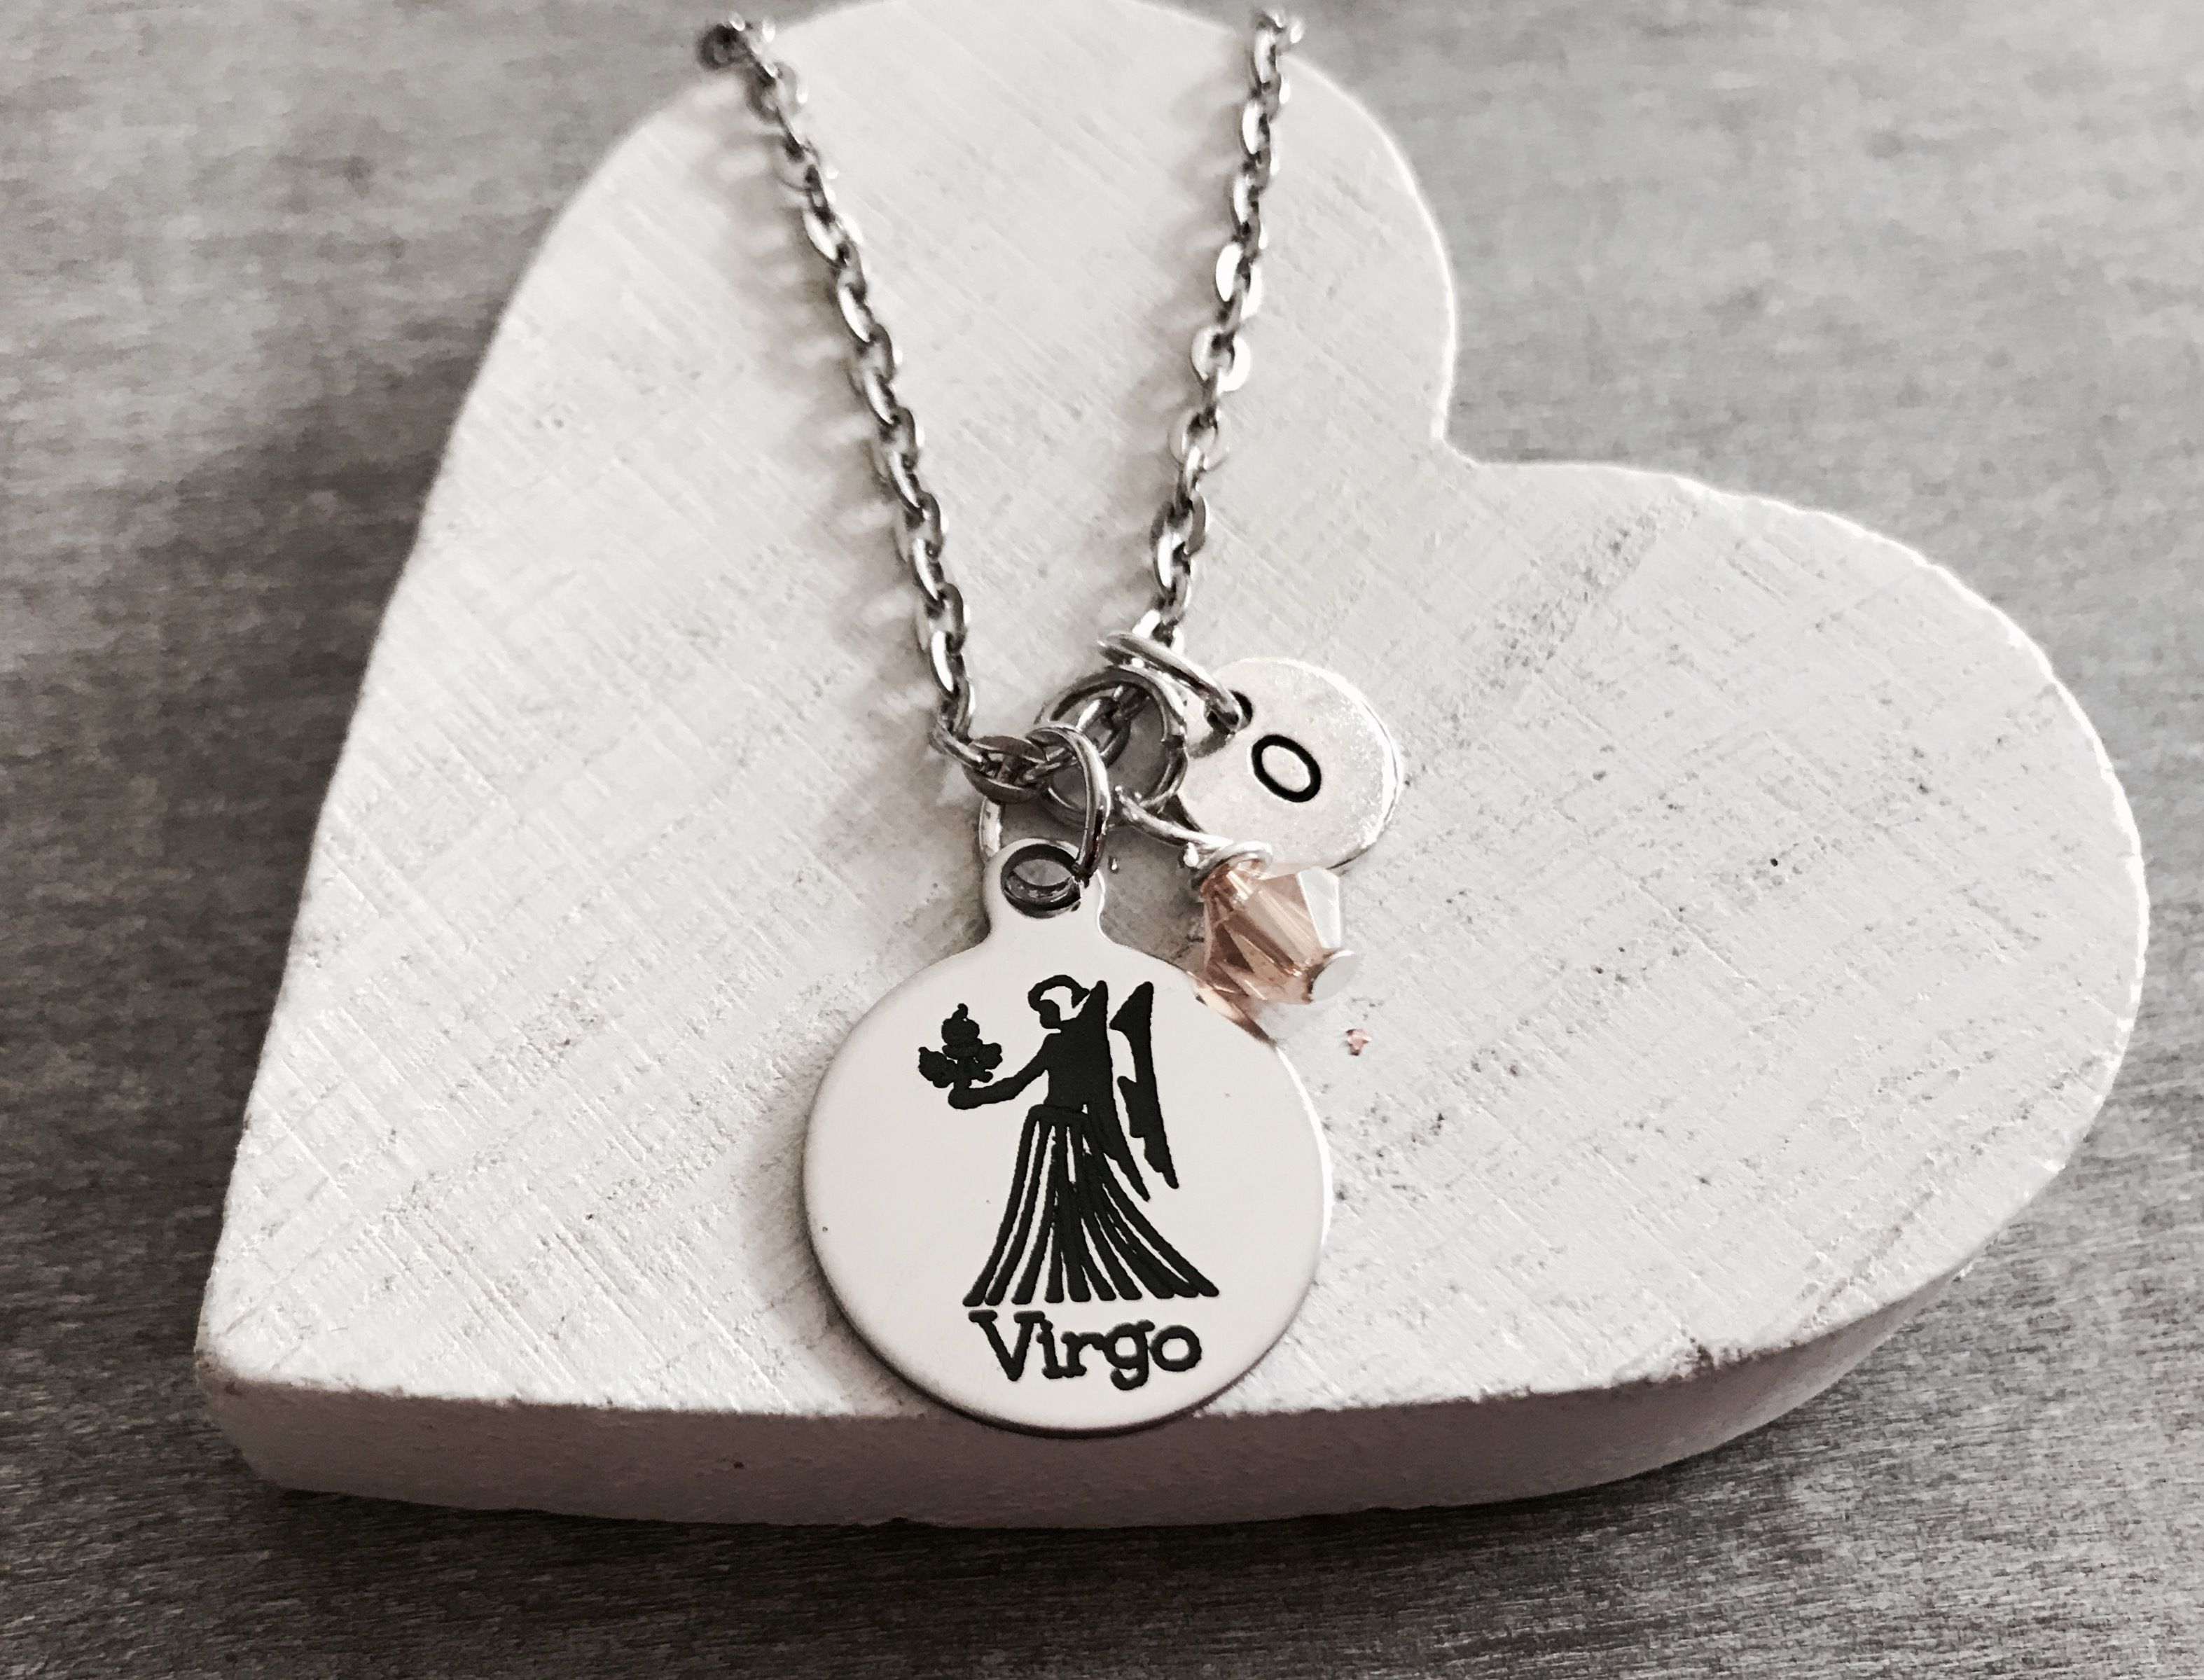 woman us necklaces virgo necklace zodiac